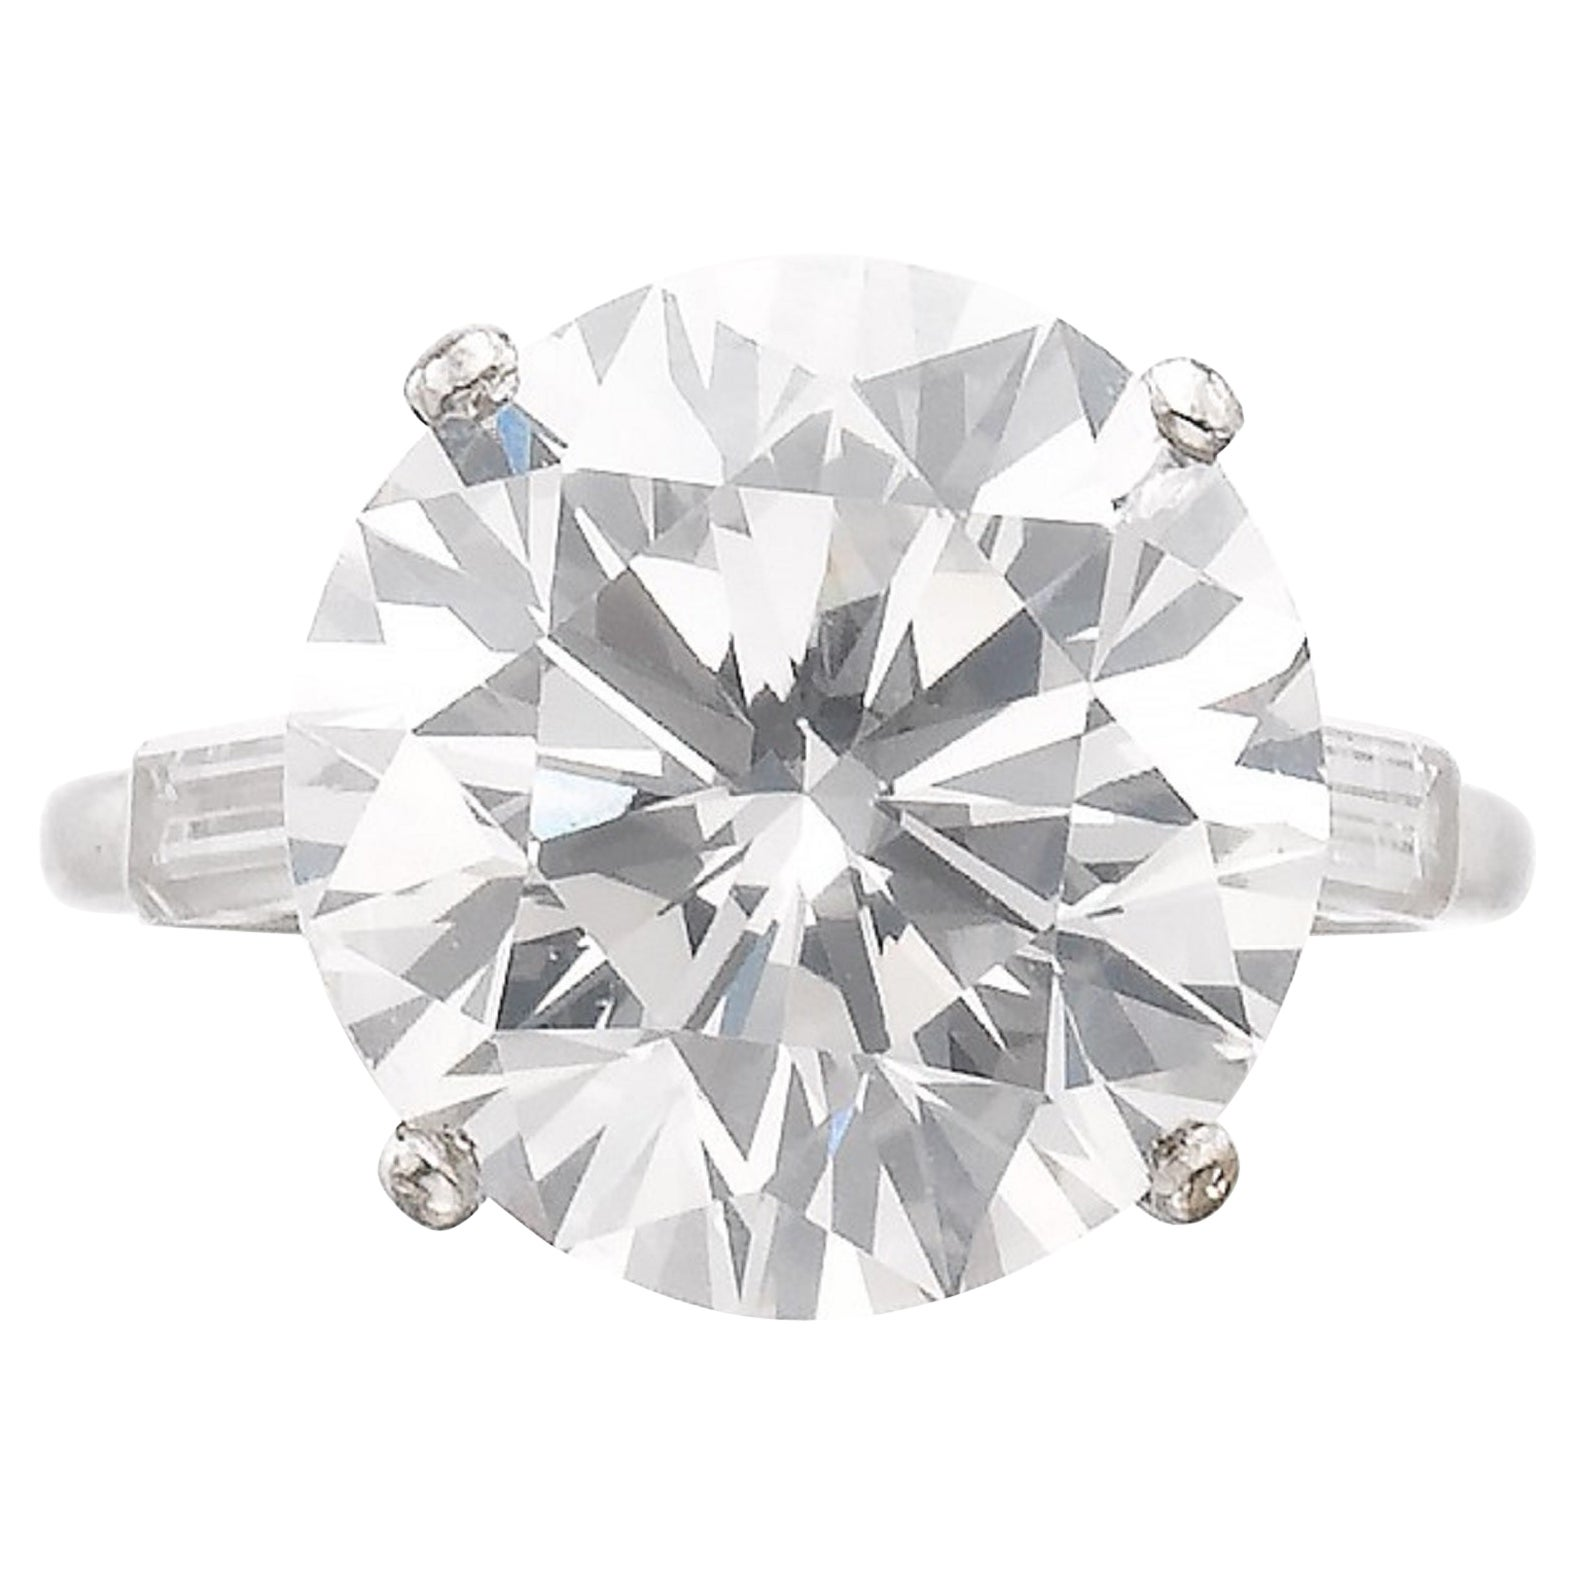 Exceptional Flawless Type 2A GIA Certified 6 Carat Round Brilliant Cut Diamond